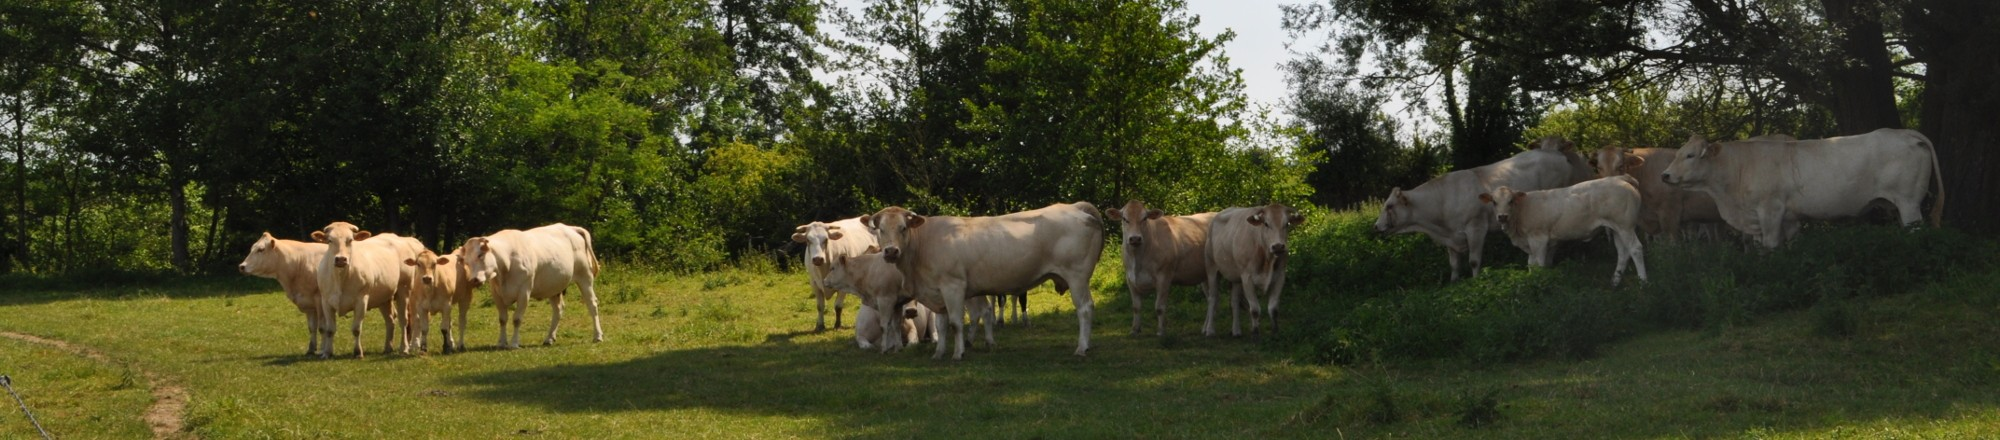 AlphaVision - photo cows